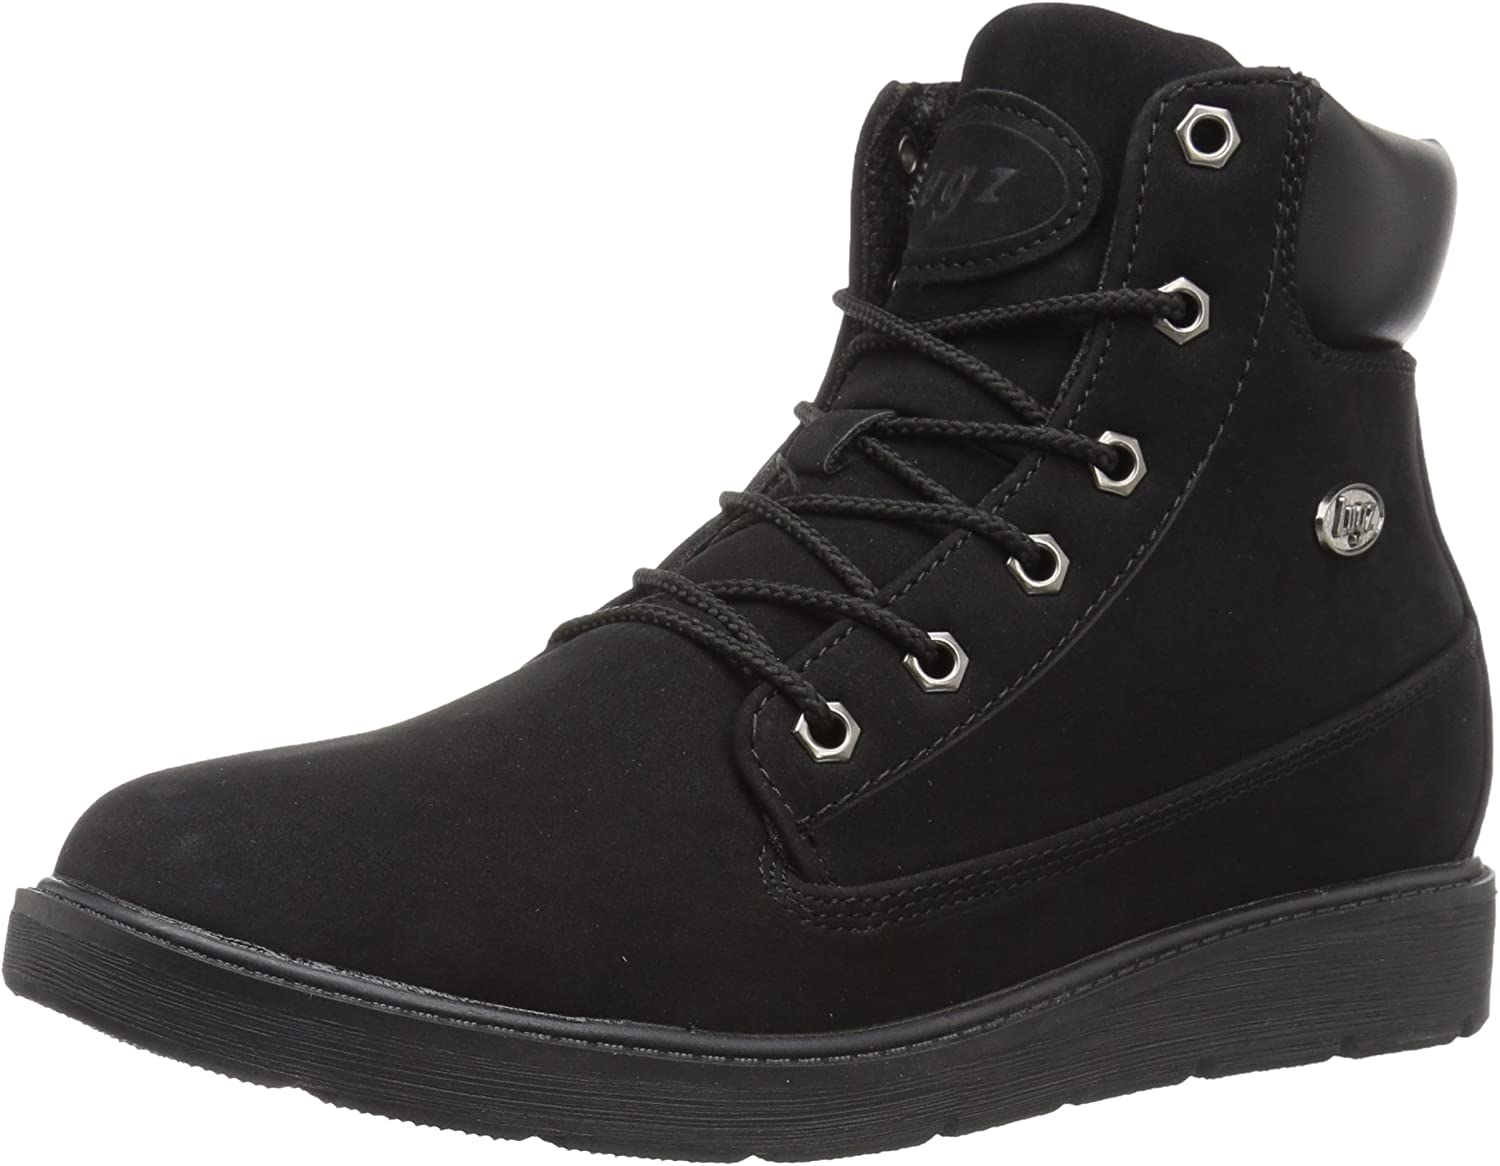 Lugz Womens Quill Hi Water Resistant Fashion Boot